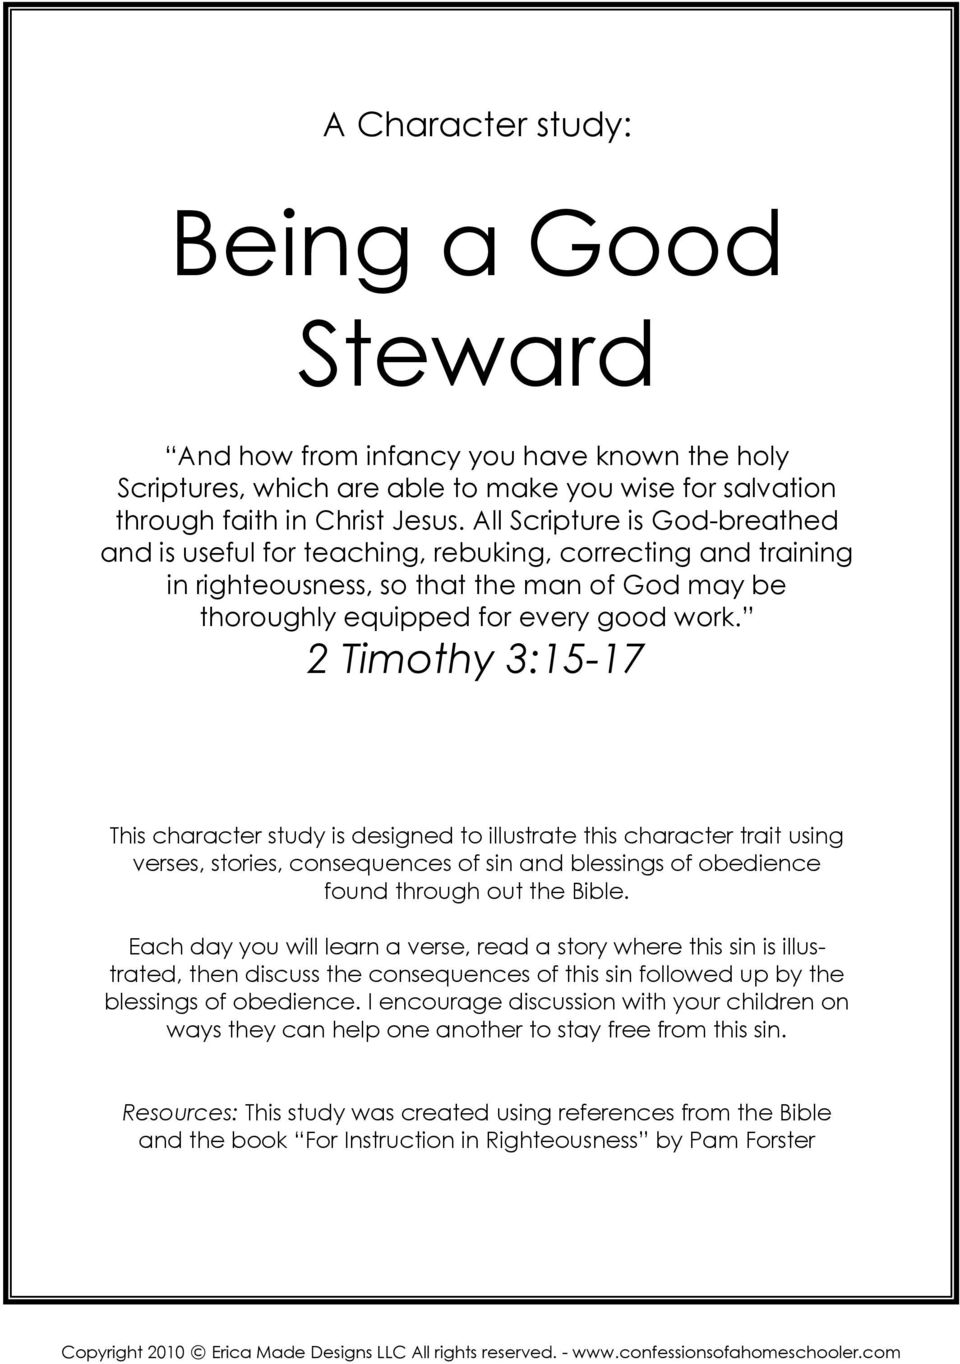 2 Timothy 3:15-17 This character study is designed to illustrate this character trait using verses, stories, consequences of sin and blessings of obedience found through out the Bible.